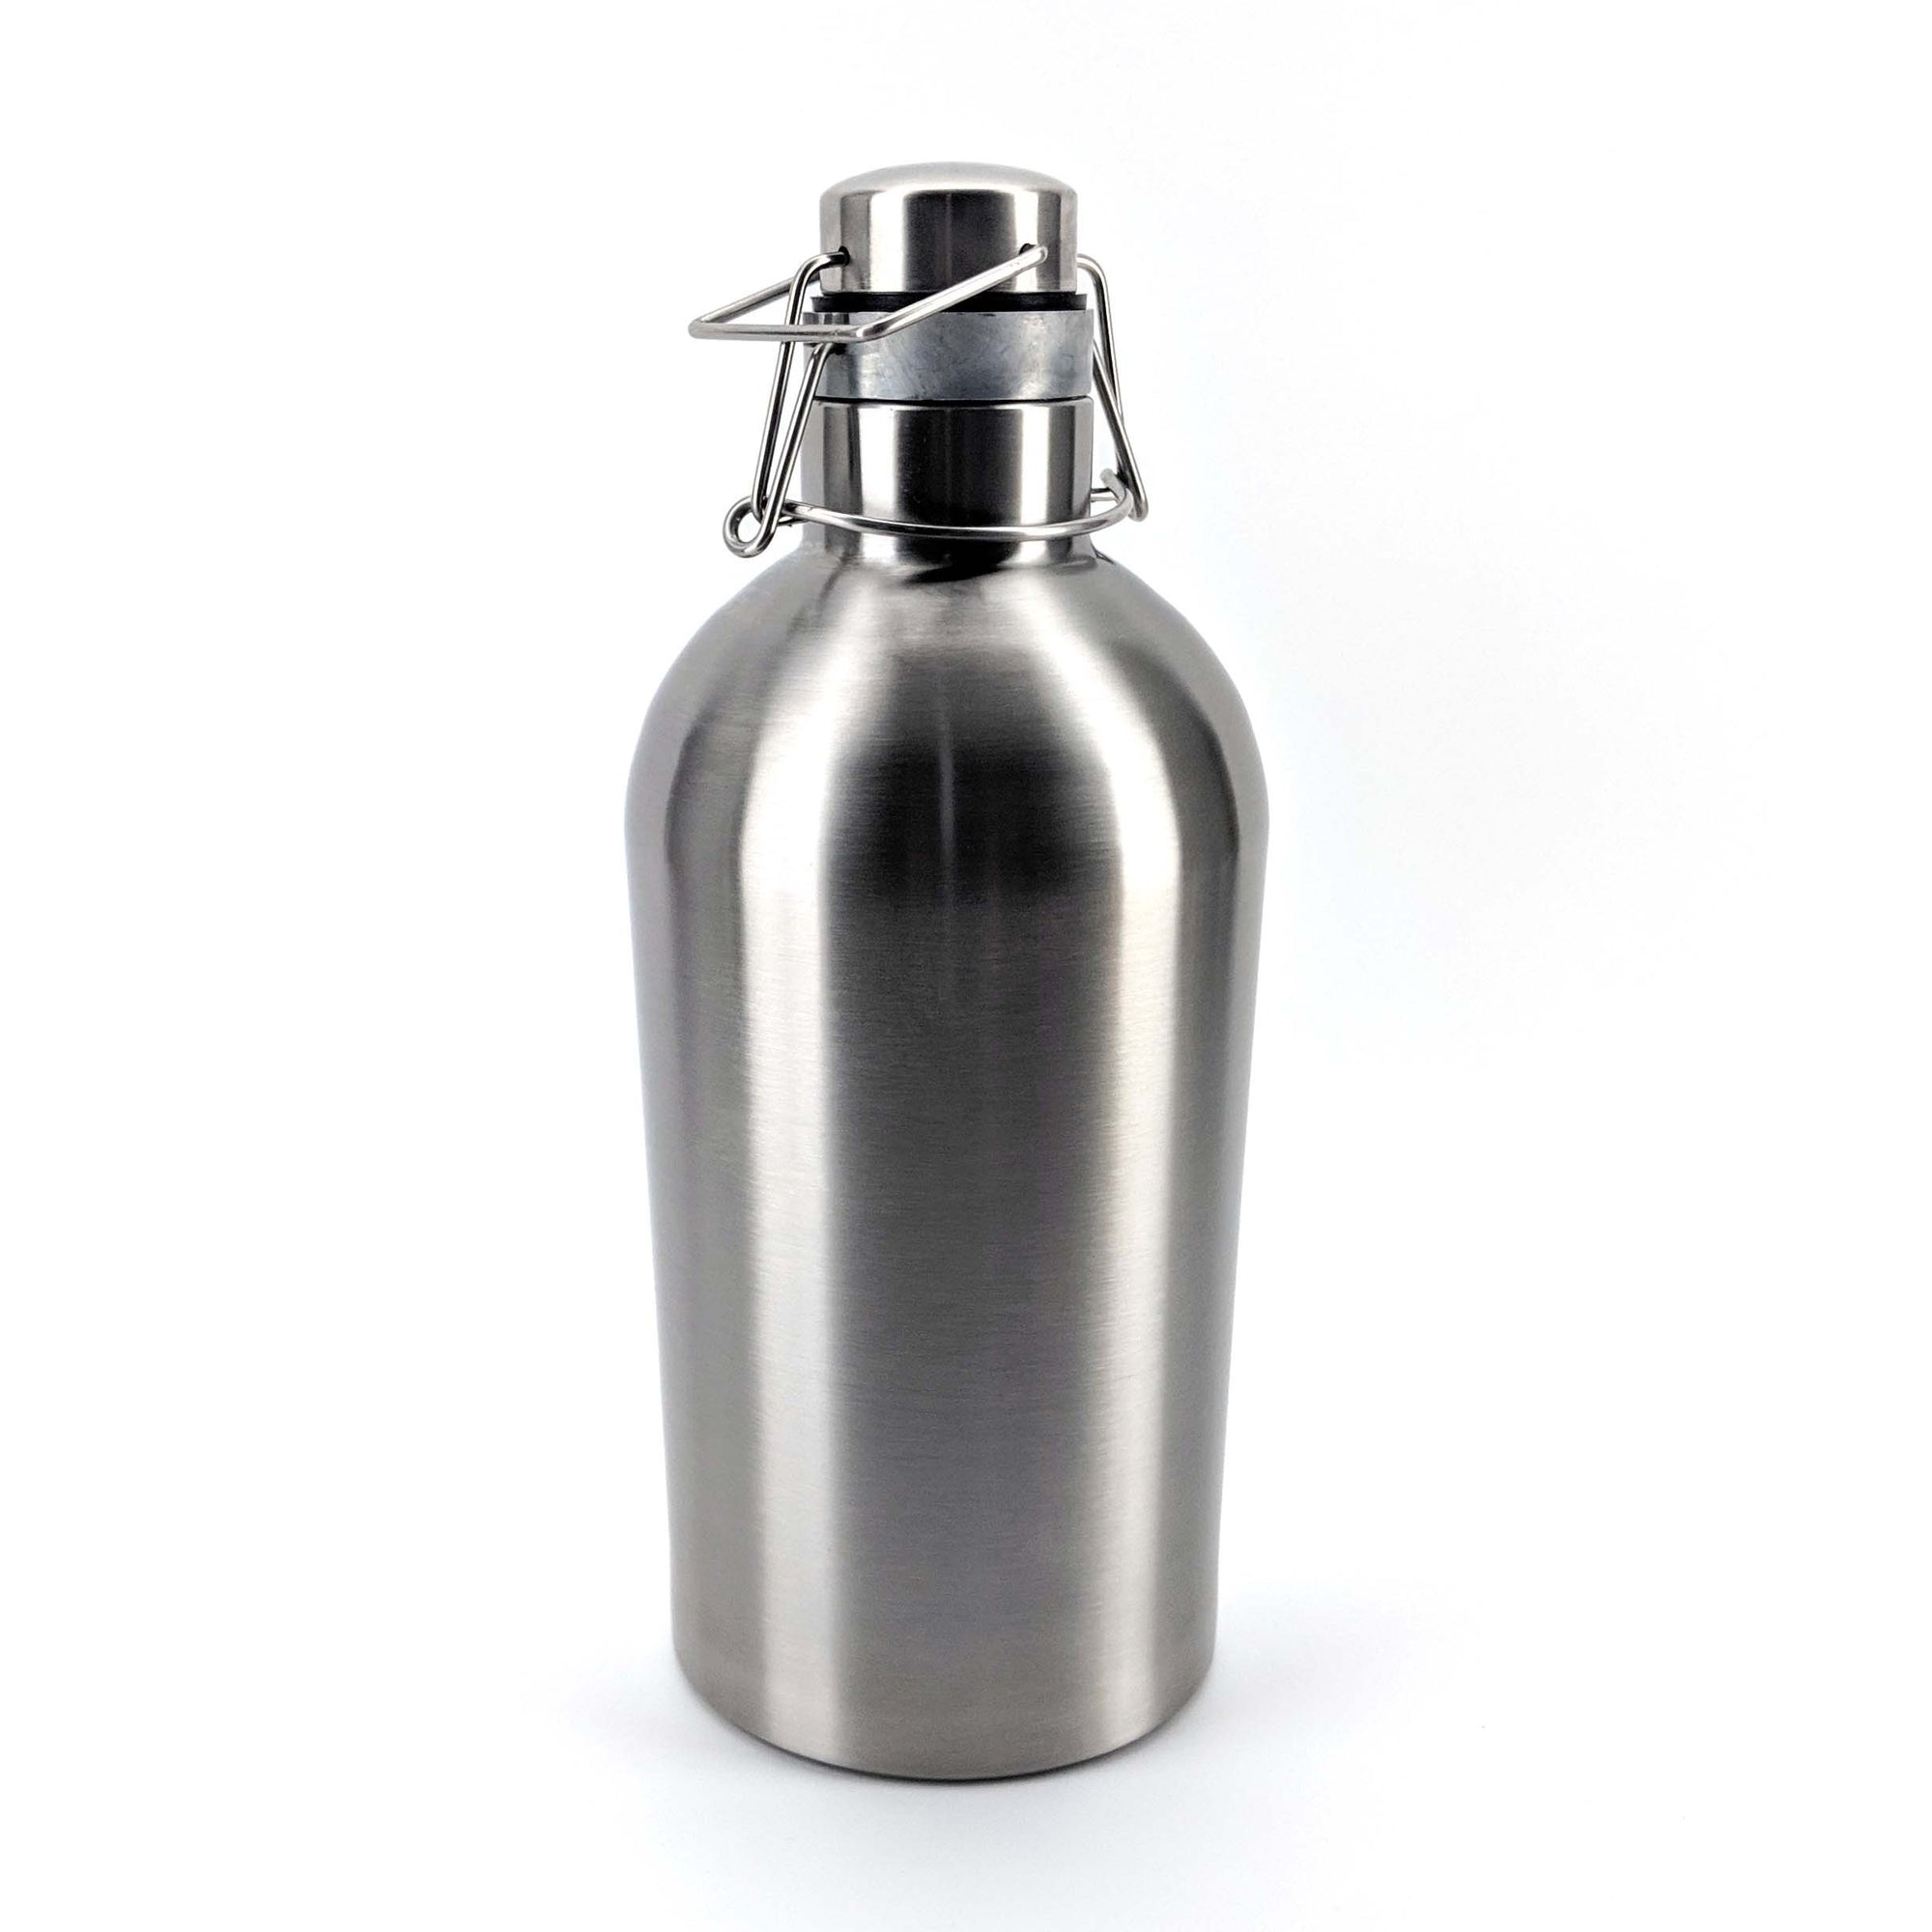 The Ultimate Beer Growler